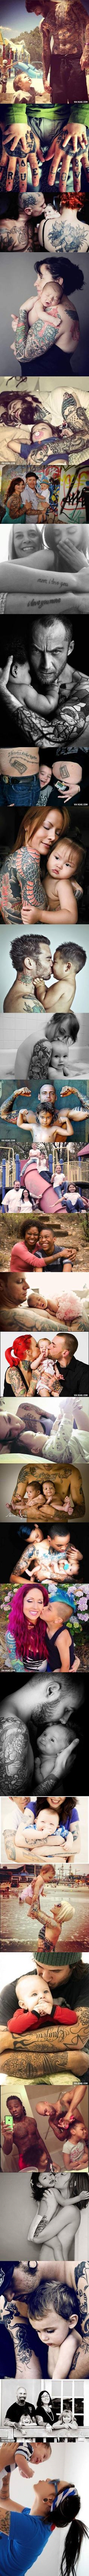 30 Beautiful Photos Of Tattooed Parents Who Love Their Kids More Than Anything (real or photoshopped they're all awesome)